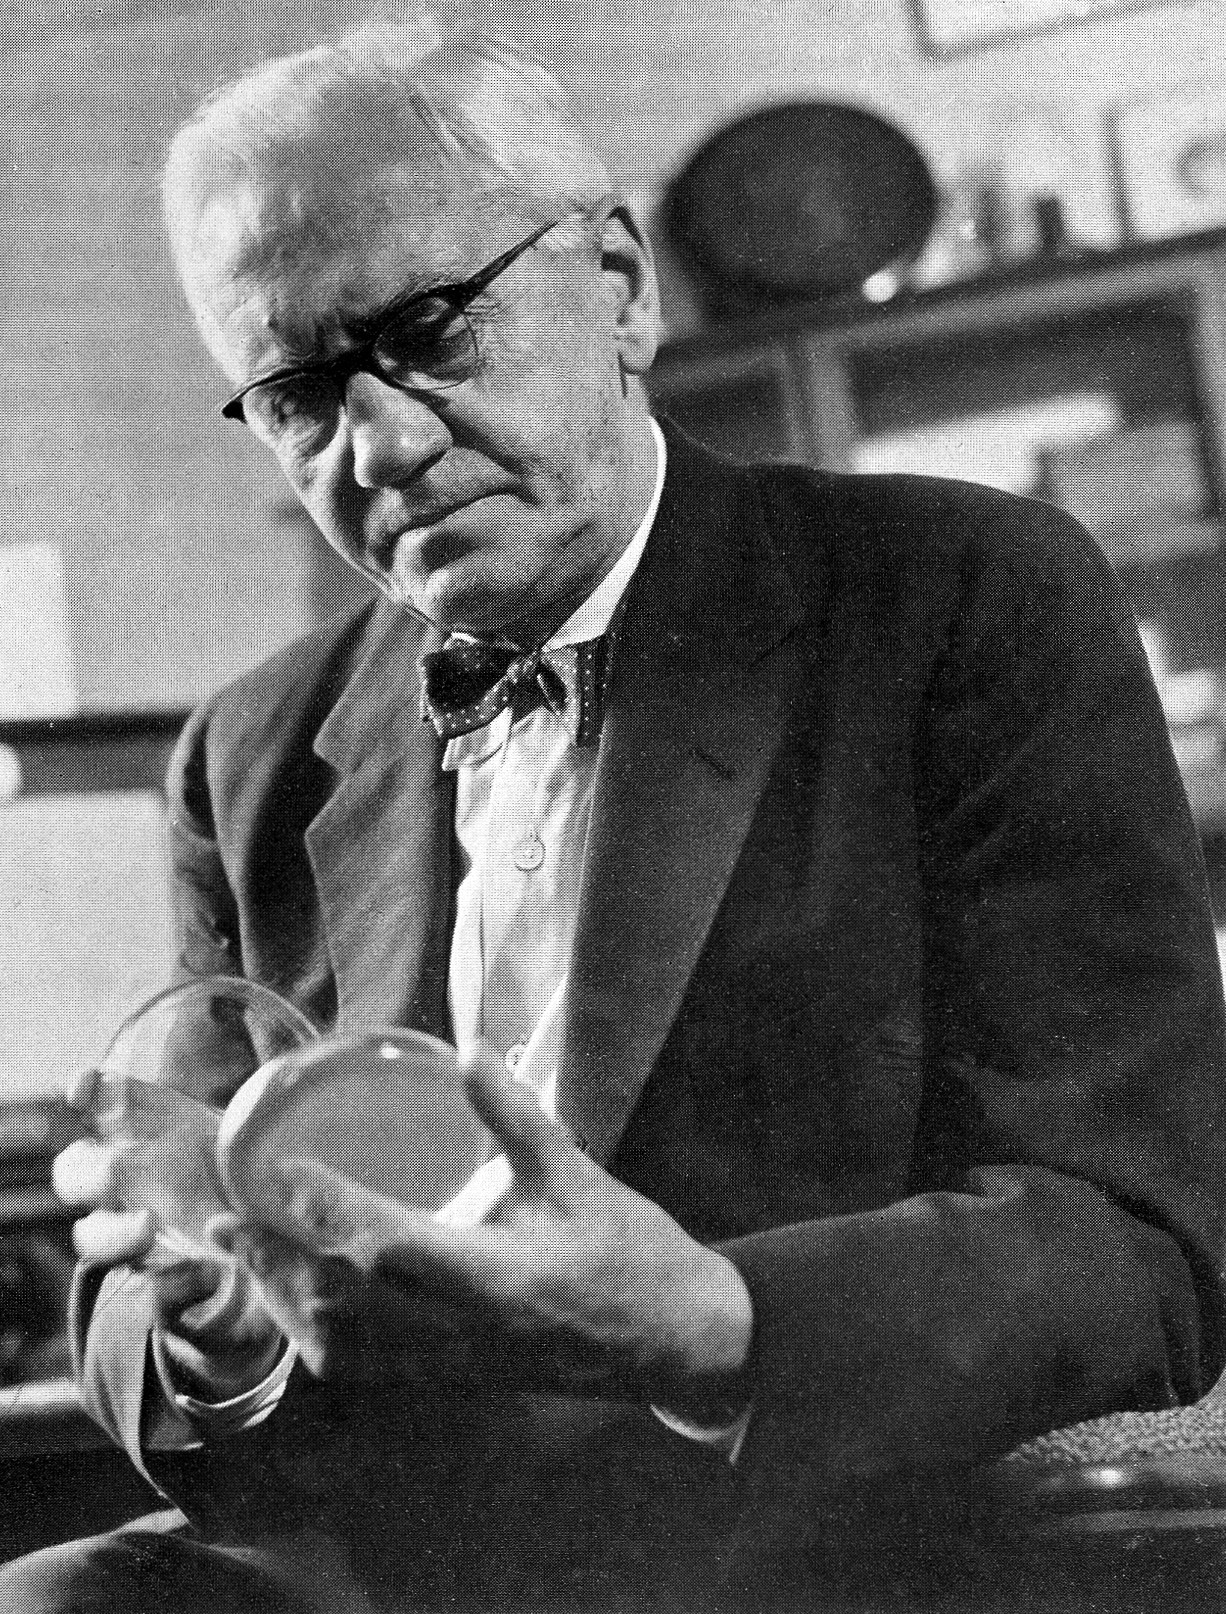 Black and white photo of Alexander Fleming